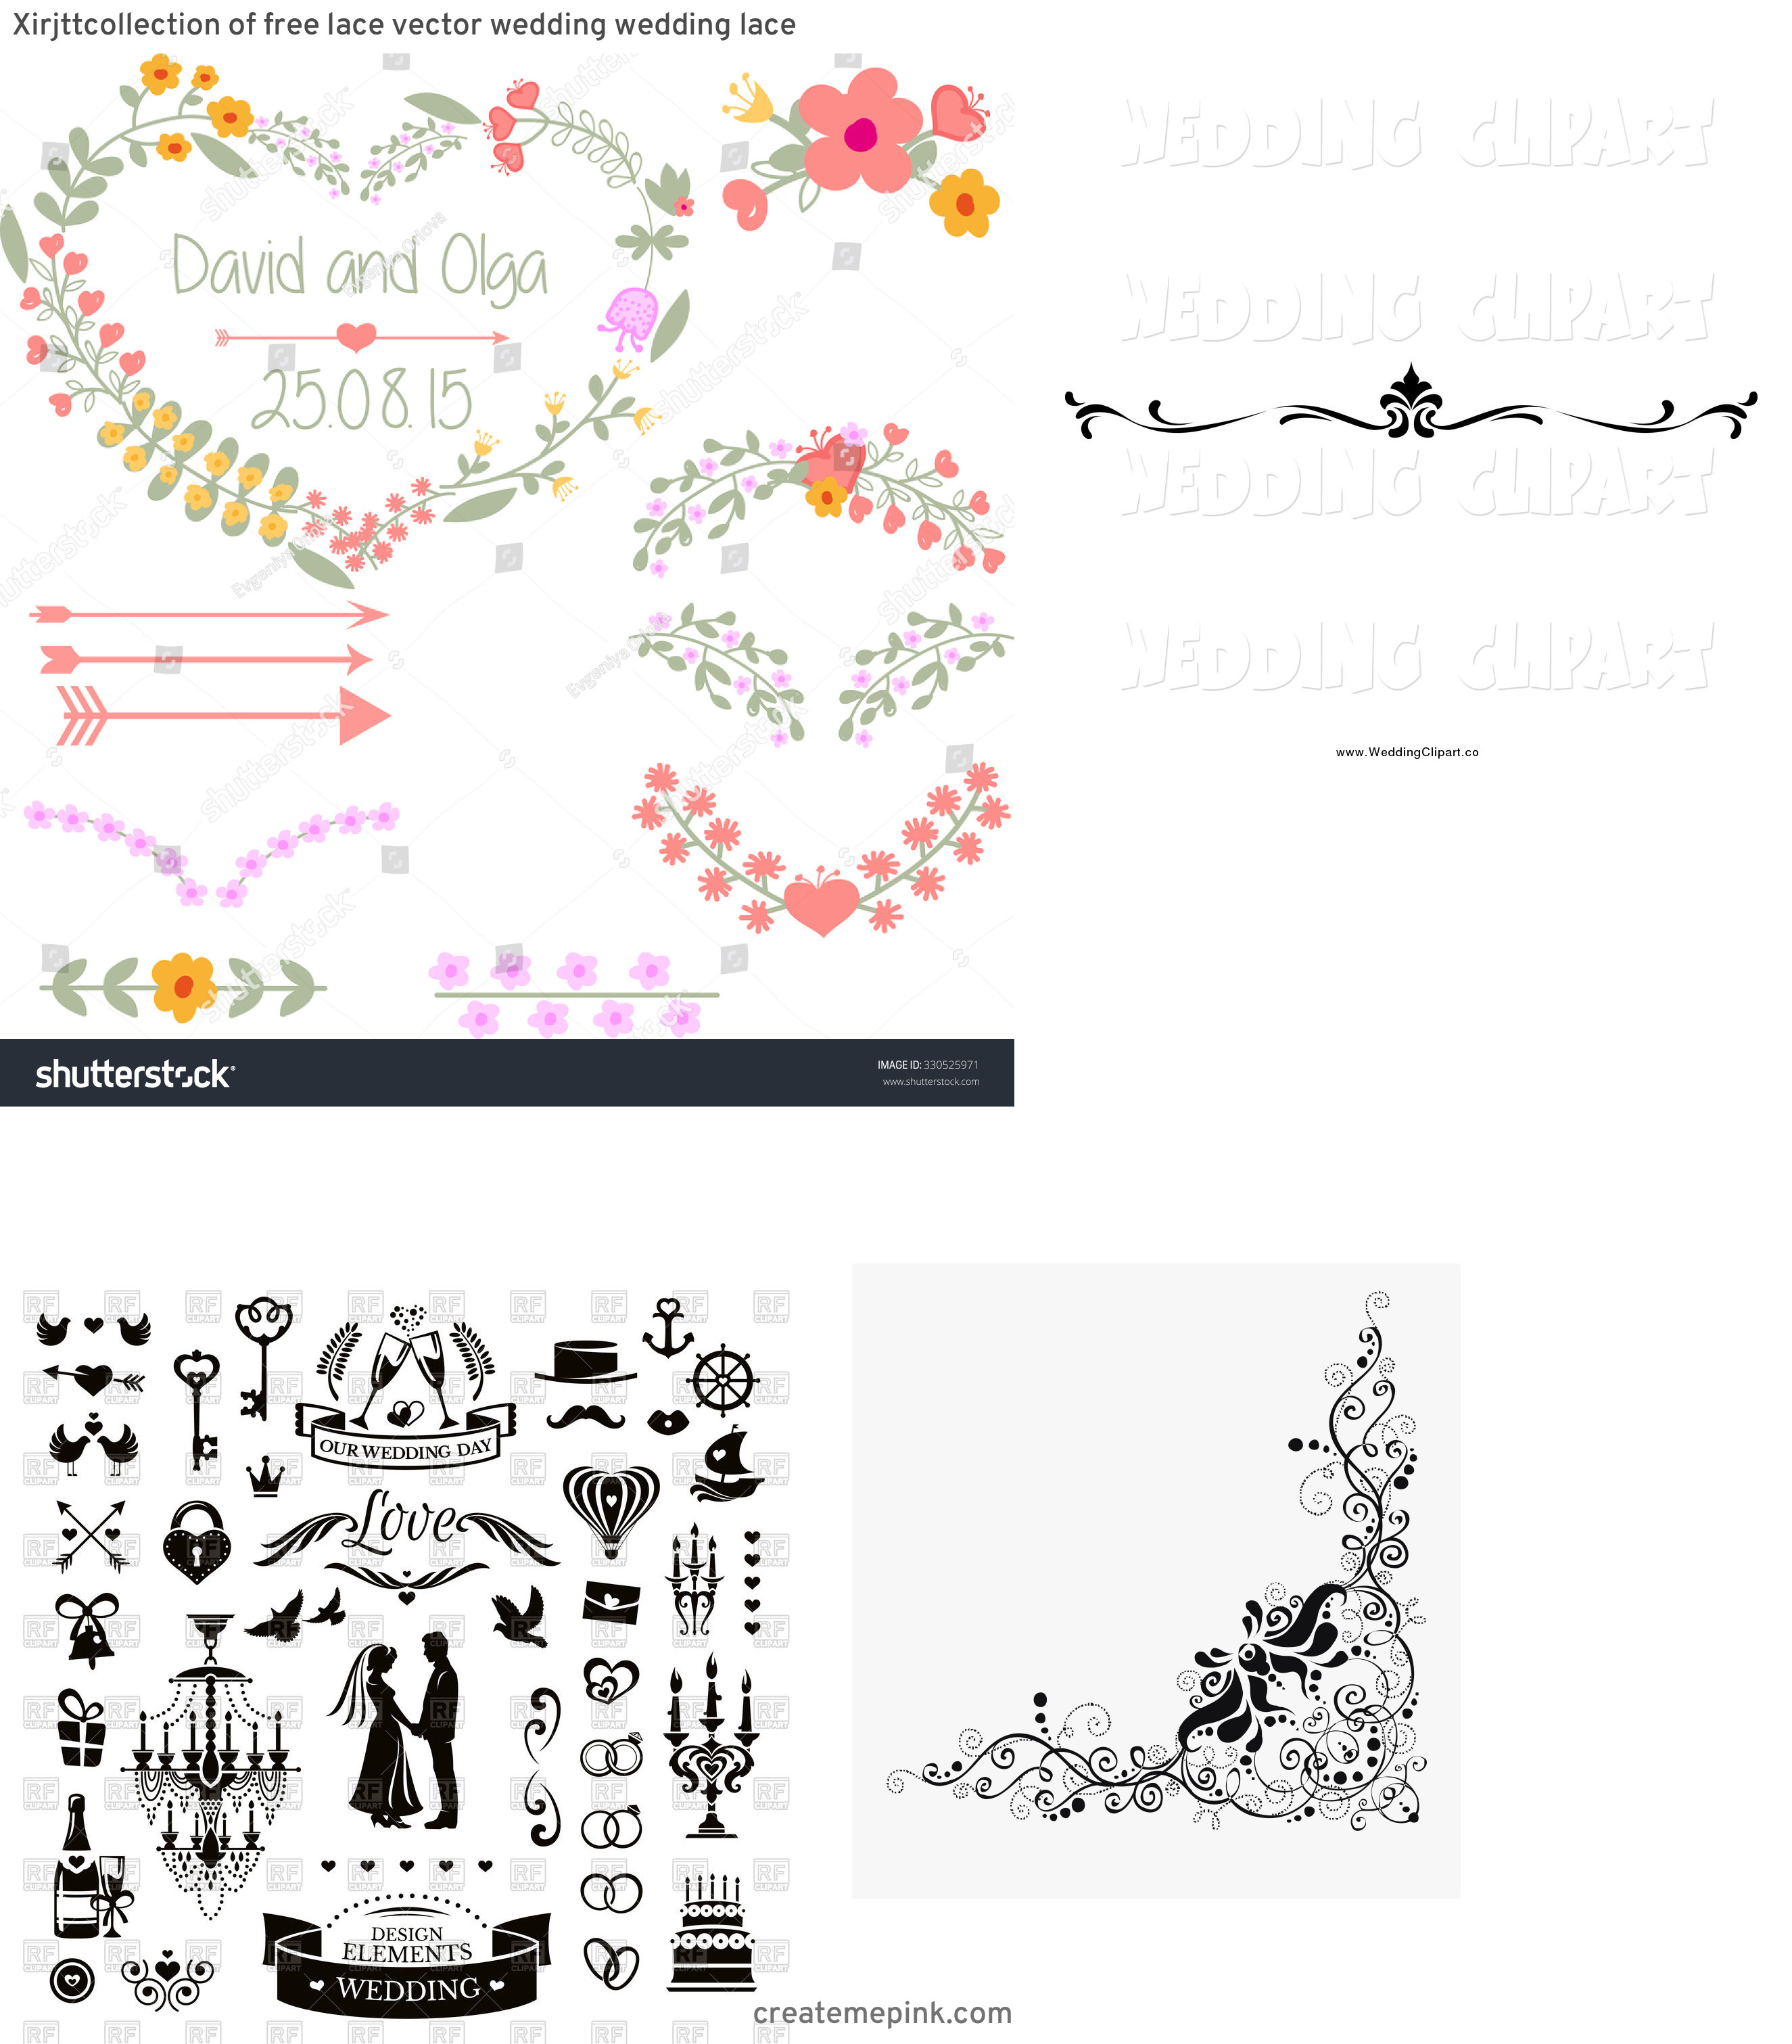 Vector Wedding Clip Art: Xirjttcollection Of Free Lace Vector Wedding Wedding Lace